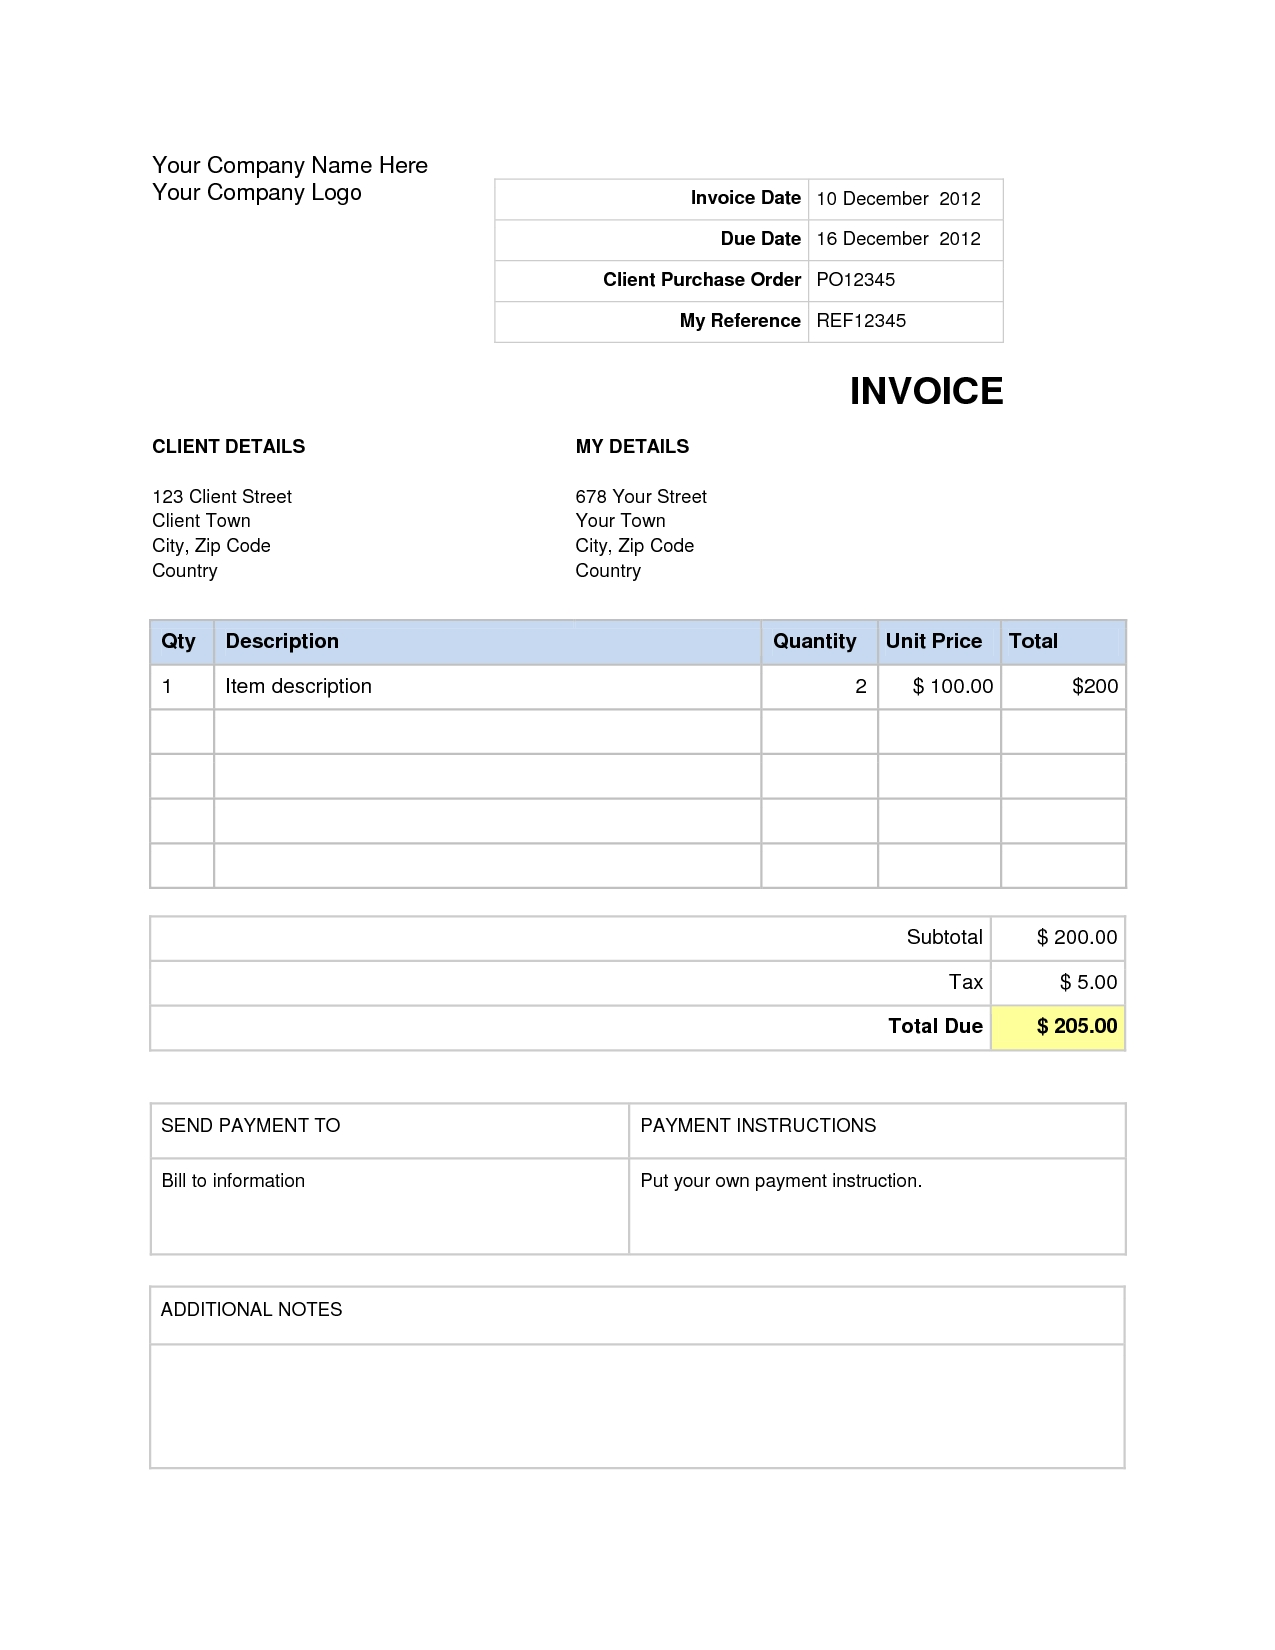 Download Invoice Template Word 2007 invoice example